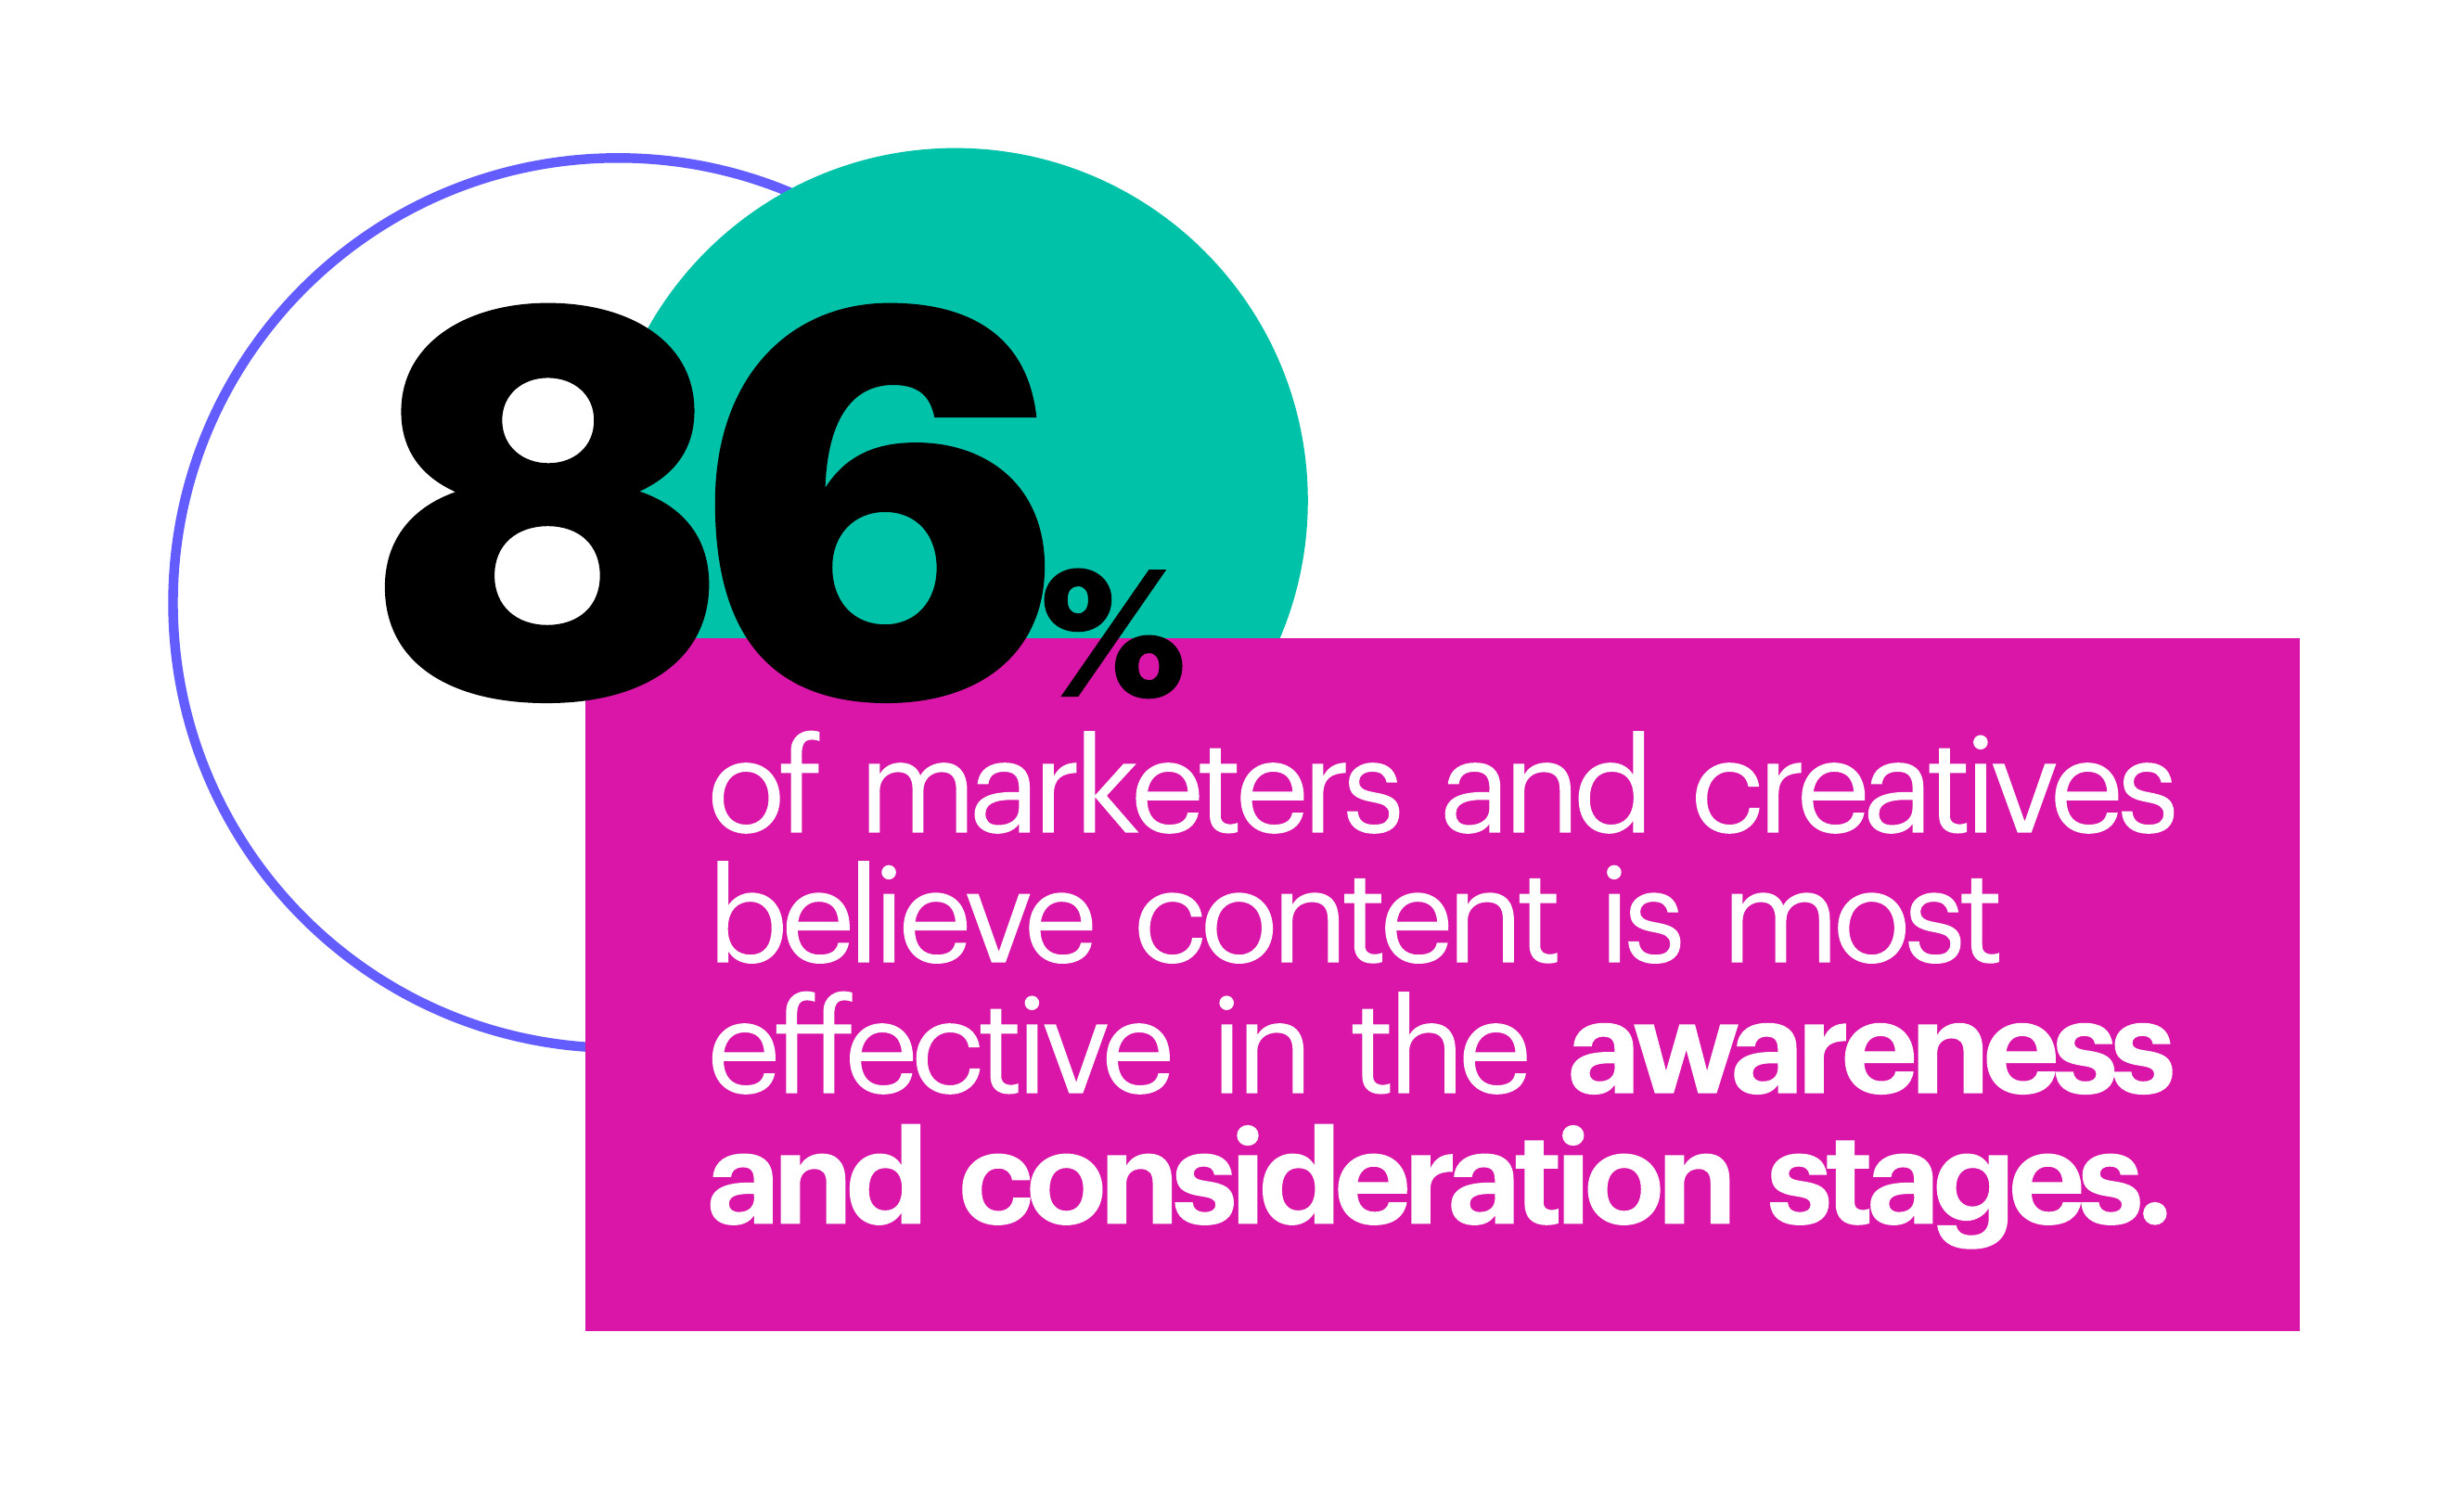 86% of marketers and creatives believe content is most effective in the awareness and consideration stages.